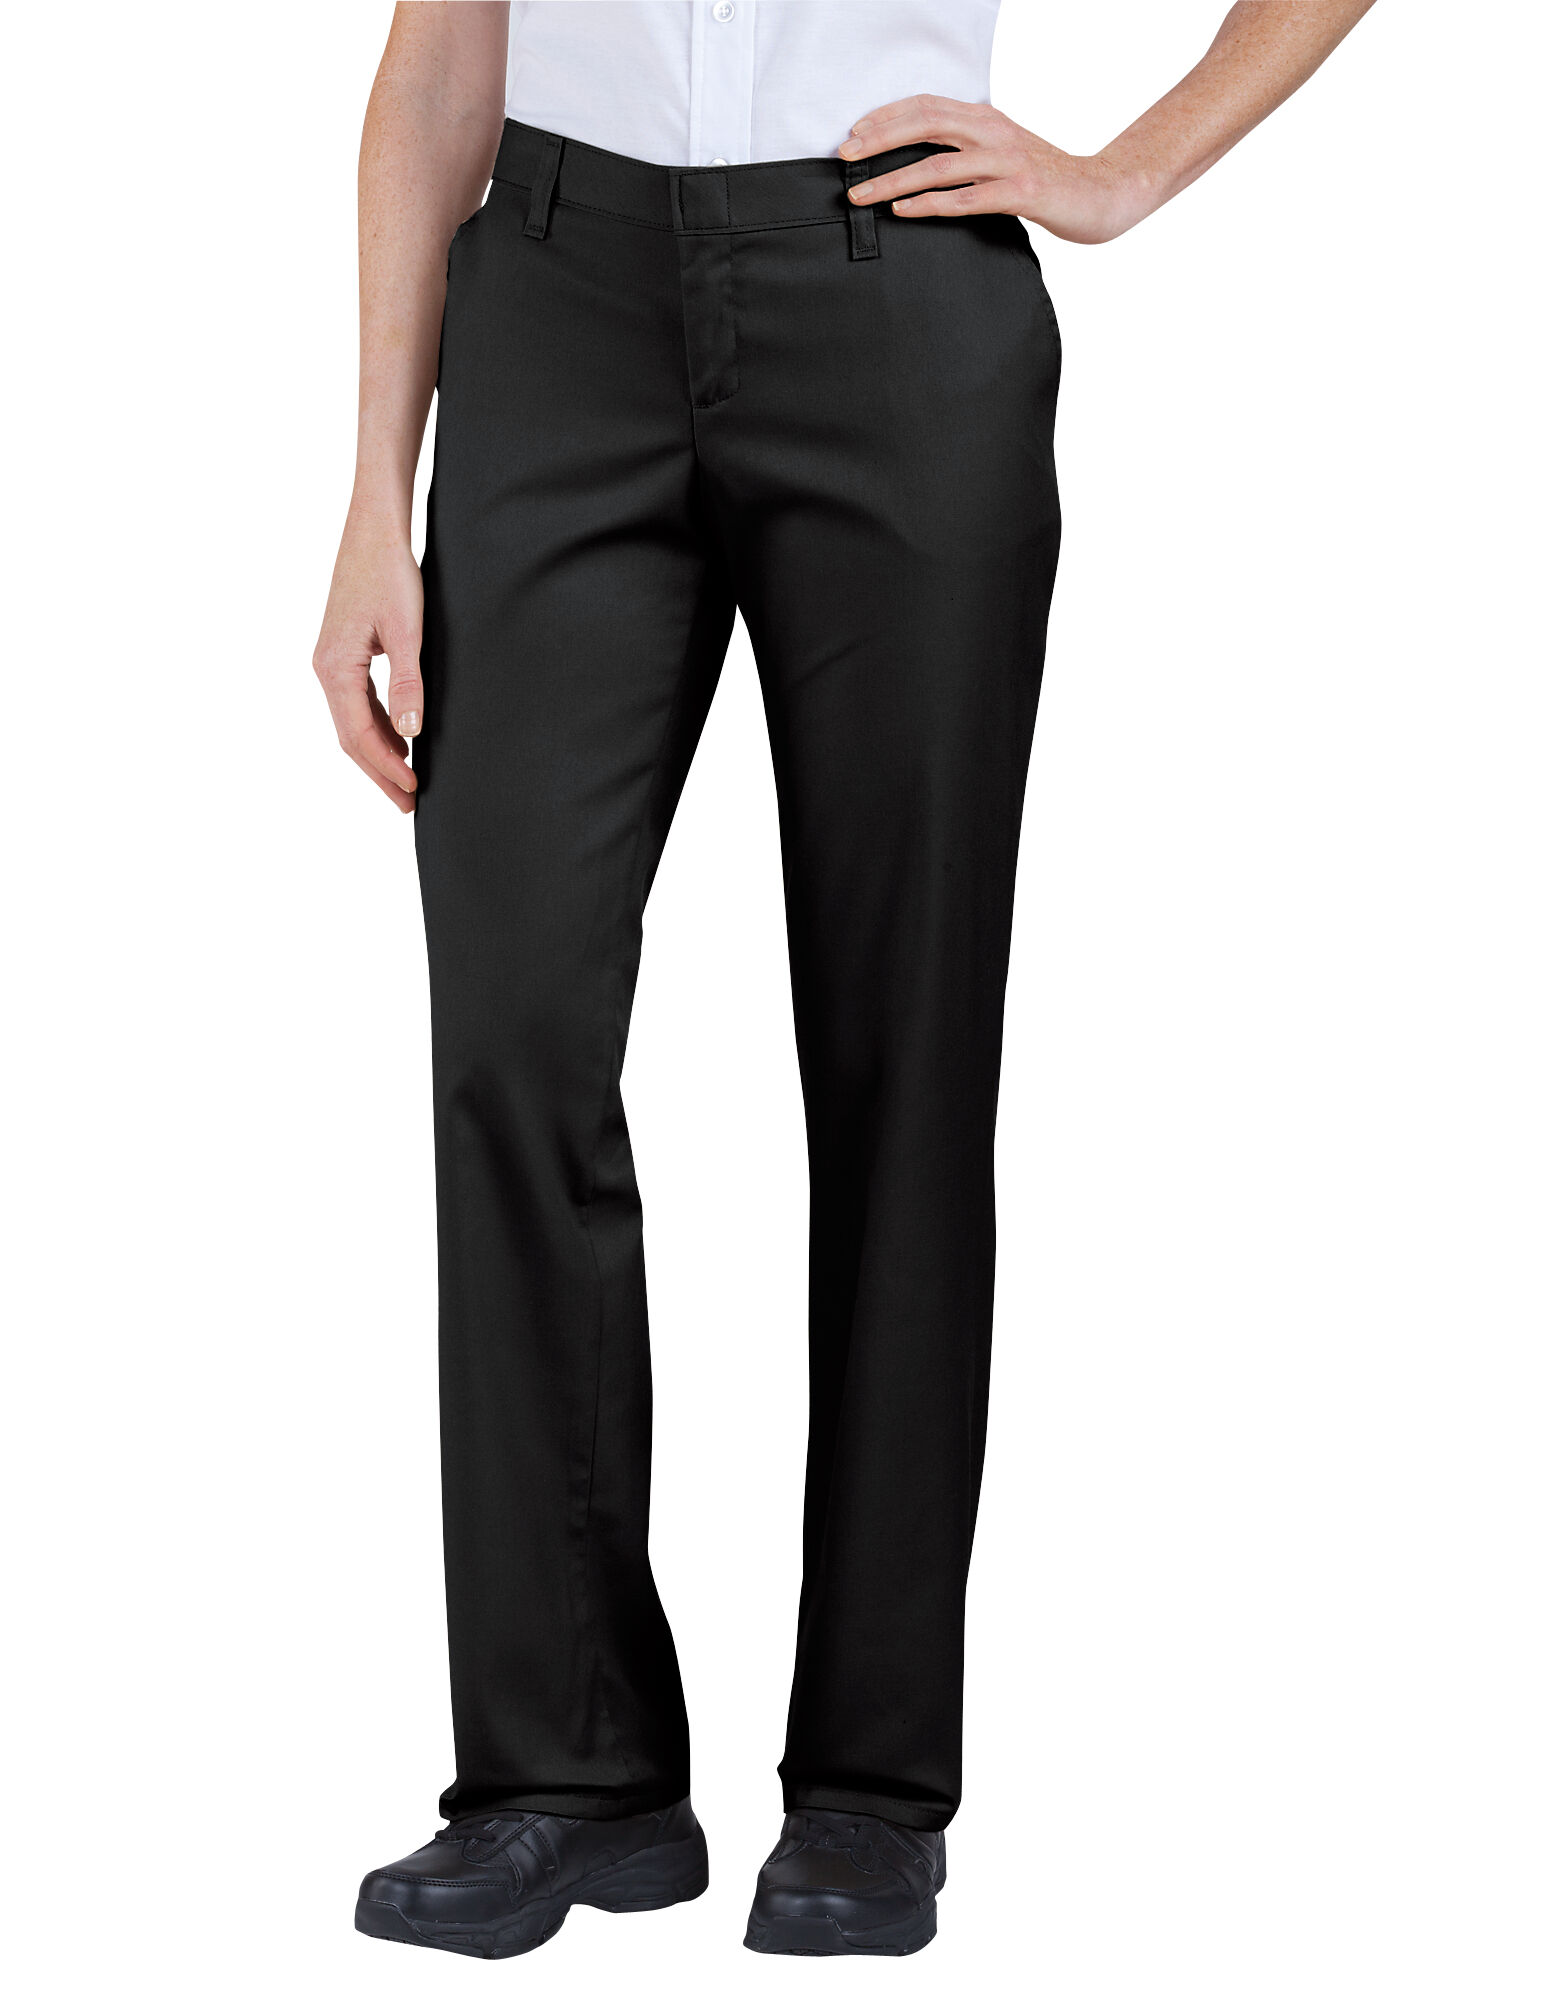 Women's Work Pants For quality women's workwear you can trust, shop Carhartt today! Carhartt makes rugged, durable women's clothing that's every ounce as tough as Carhartt women.